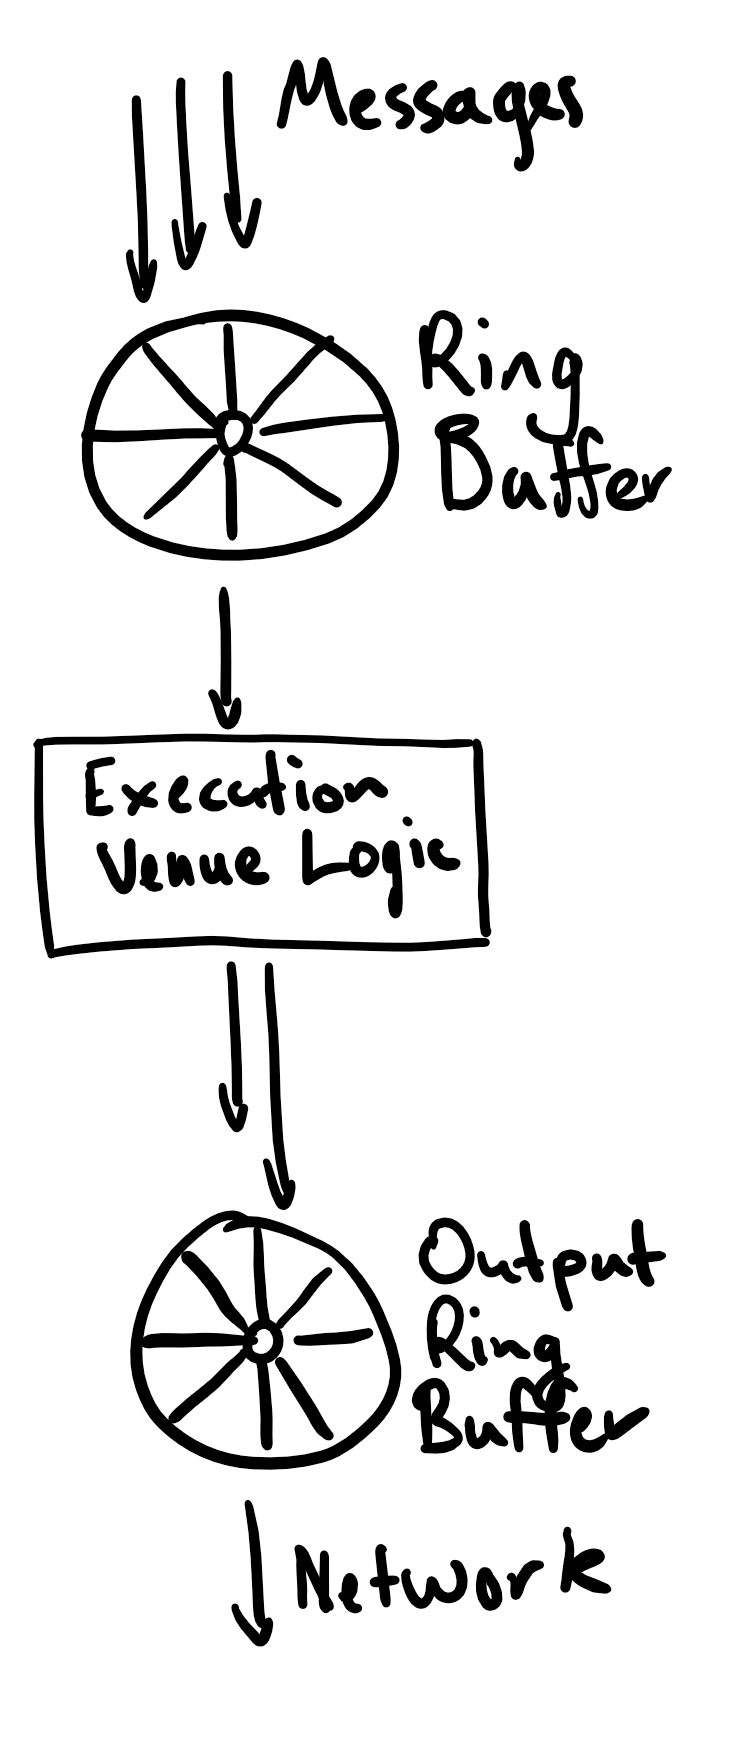 Layout of a core service and it's connections